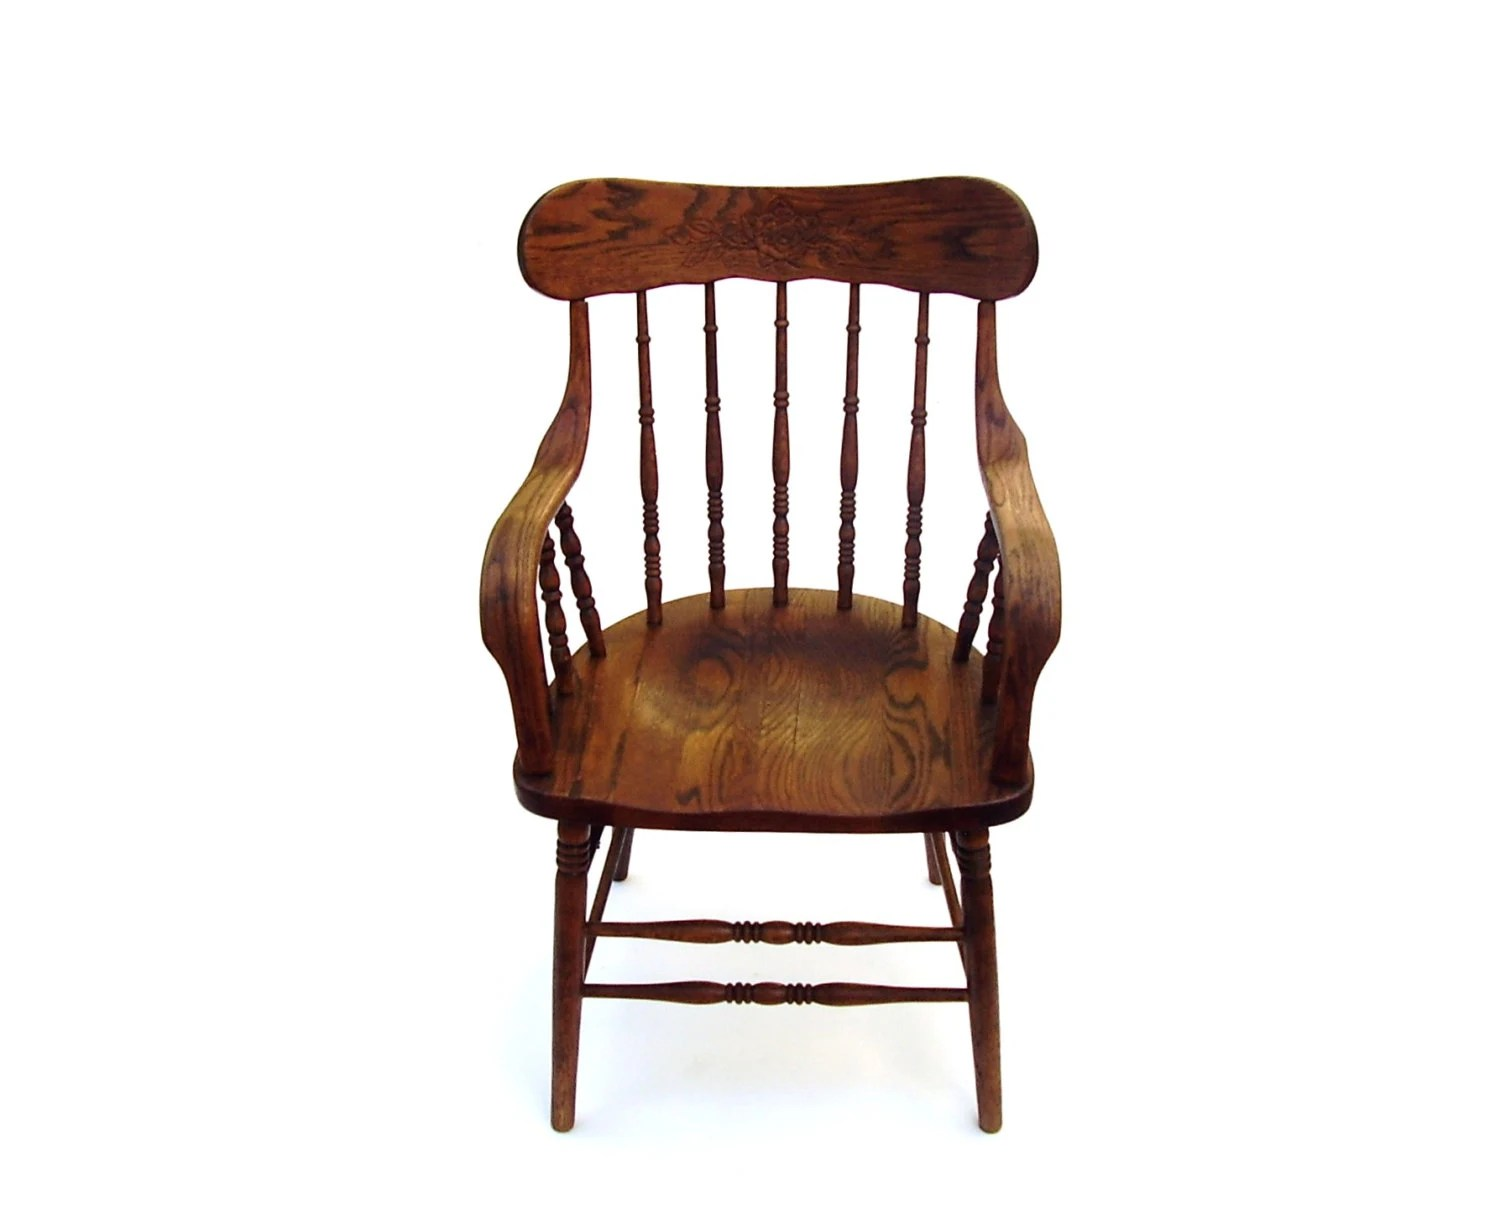 Vintage Wooden Chairs Antique Oak Chair Vintage Wood Captain Chair Spindle Back